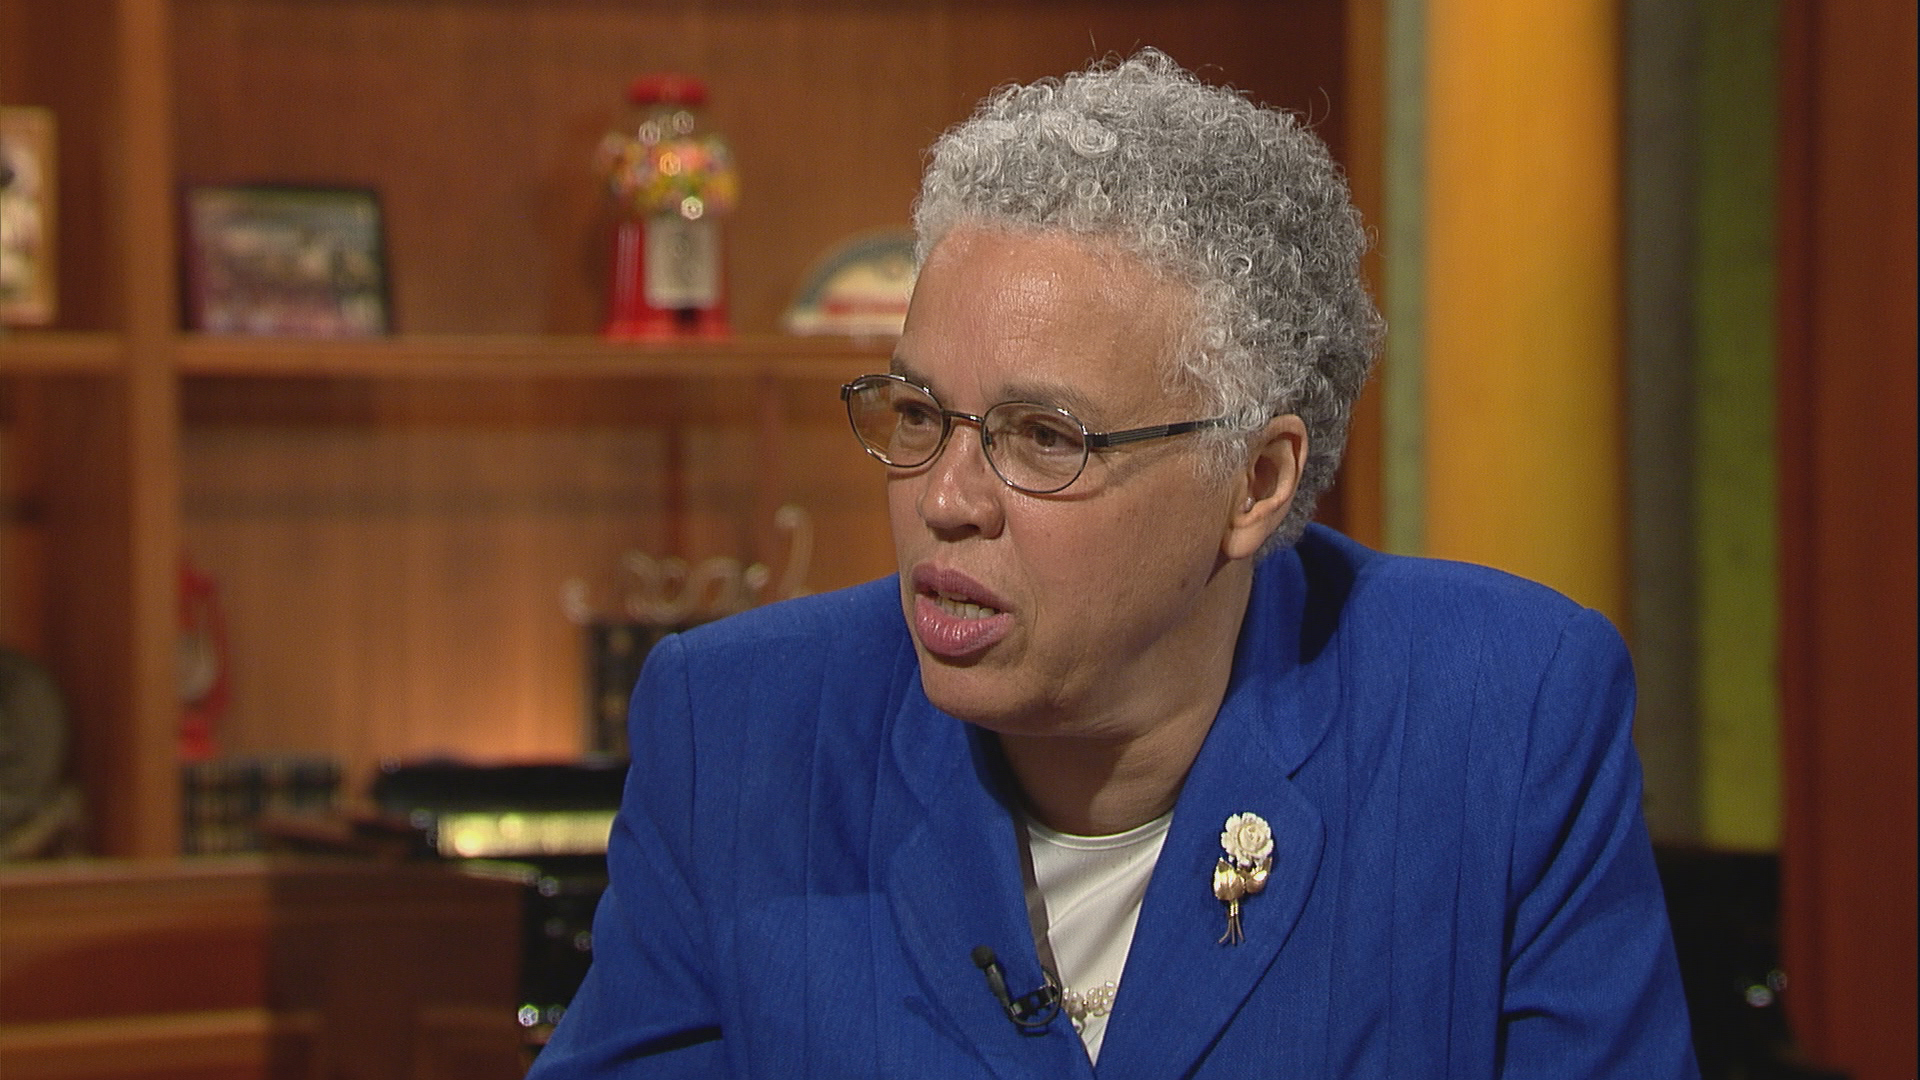 Toni Preckwinkle On 174m Cook County Budget Gap Chicago